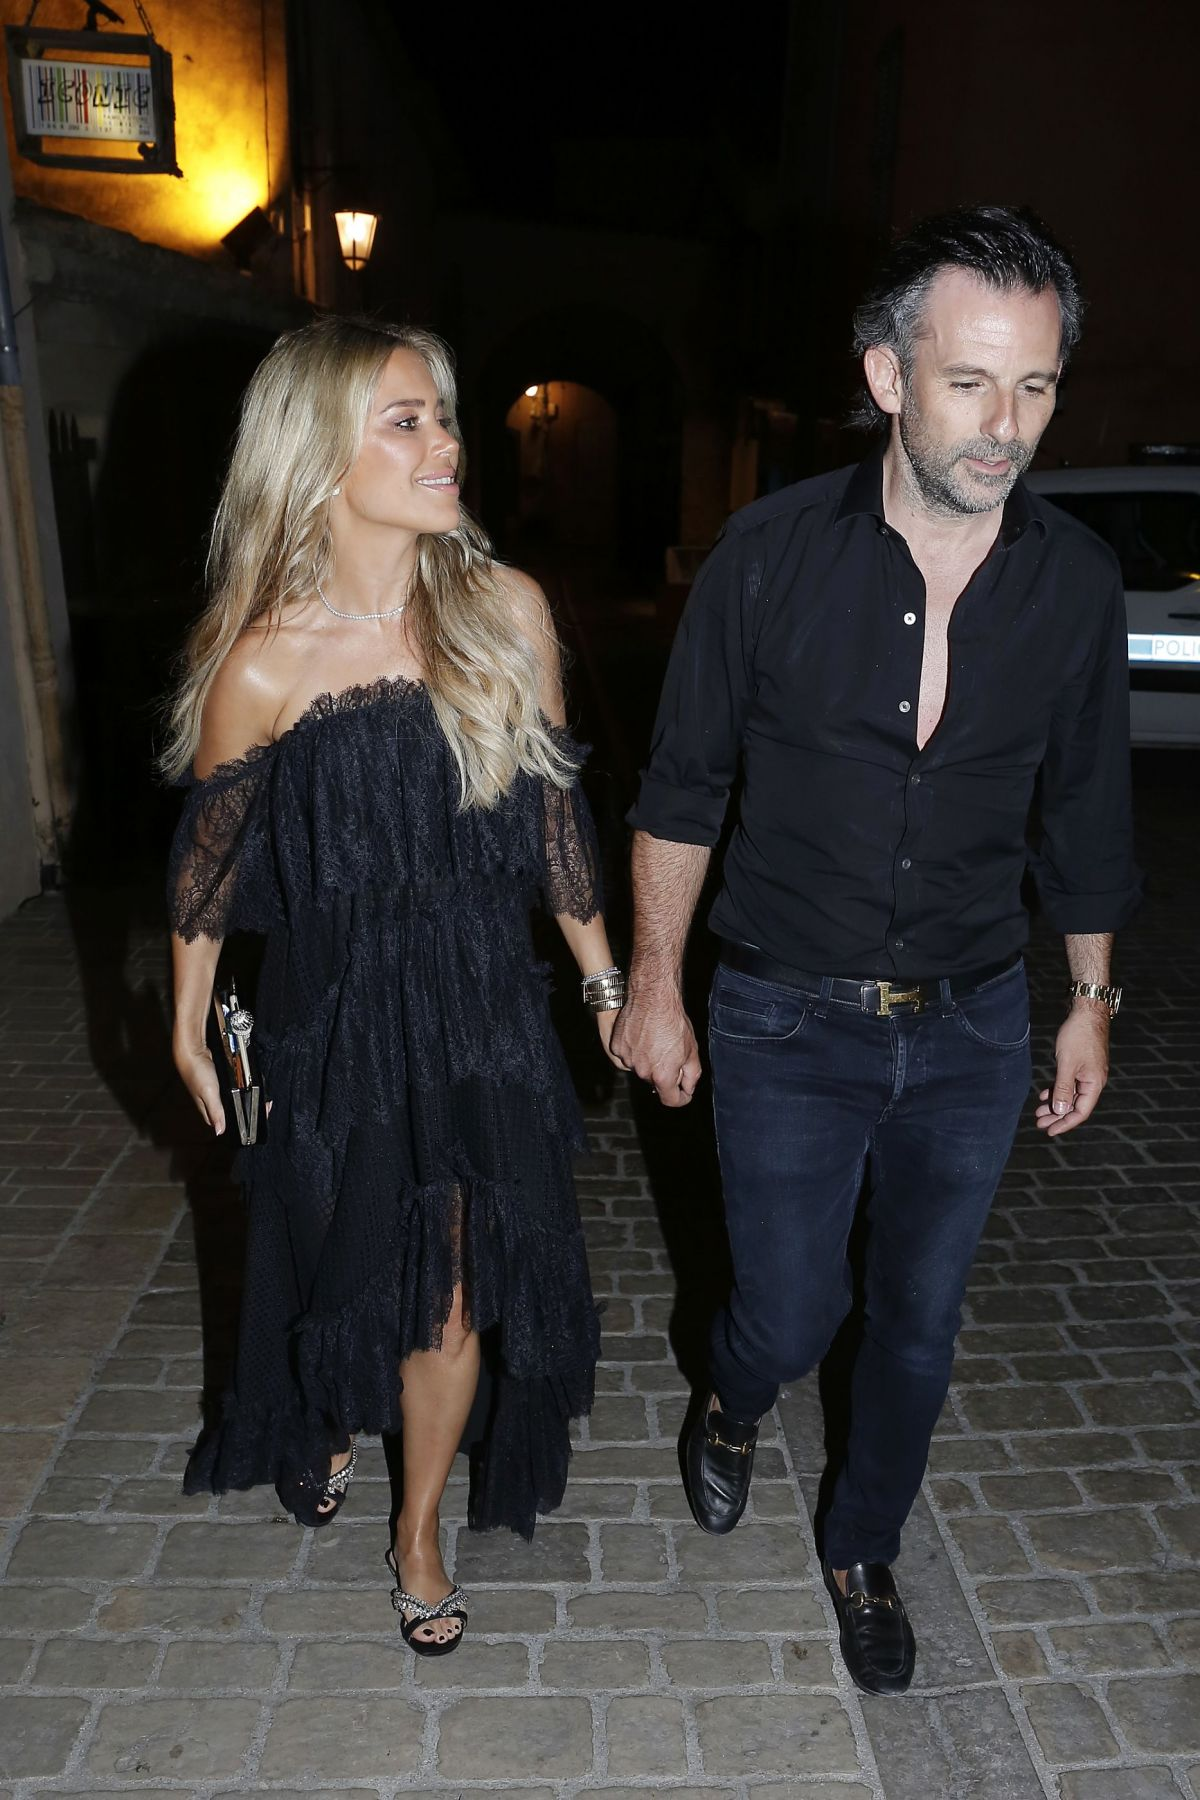 Sylvie Meis Night Out In Saint Tropez 06 21 2020 Selebs Of World